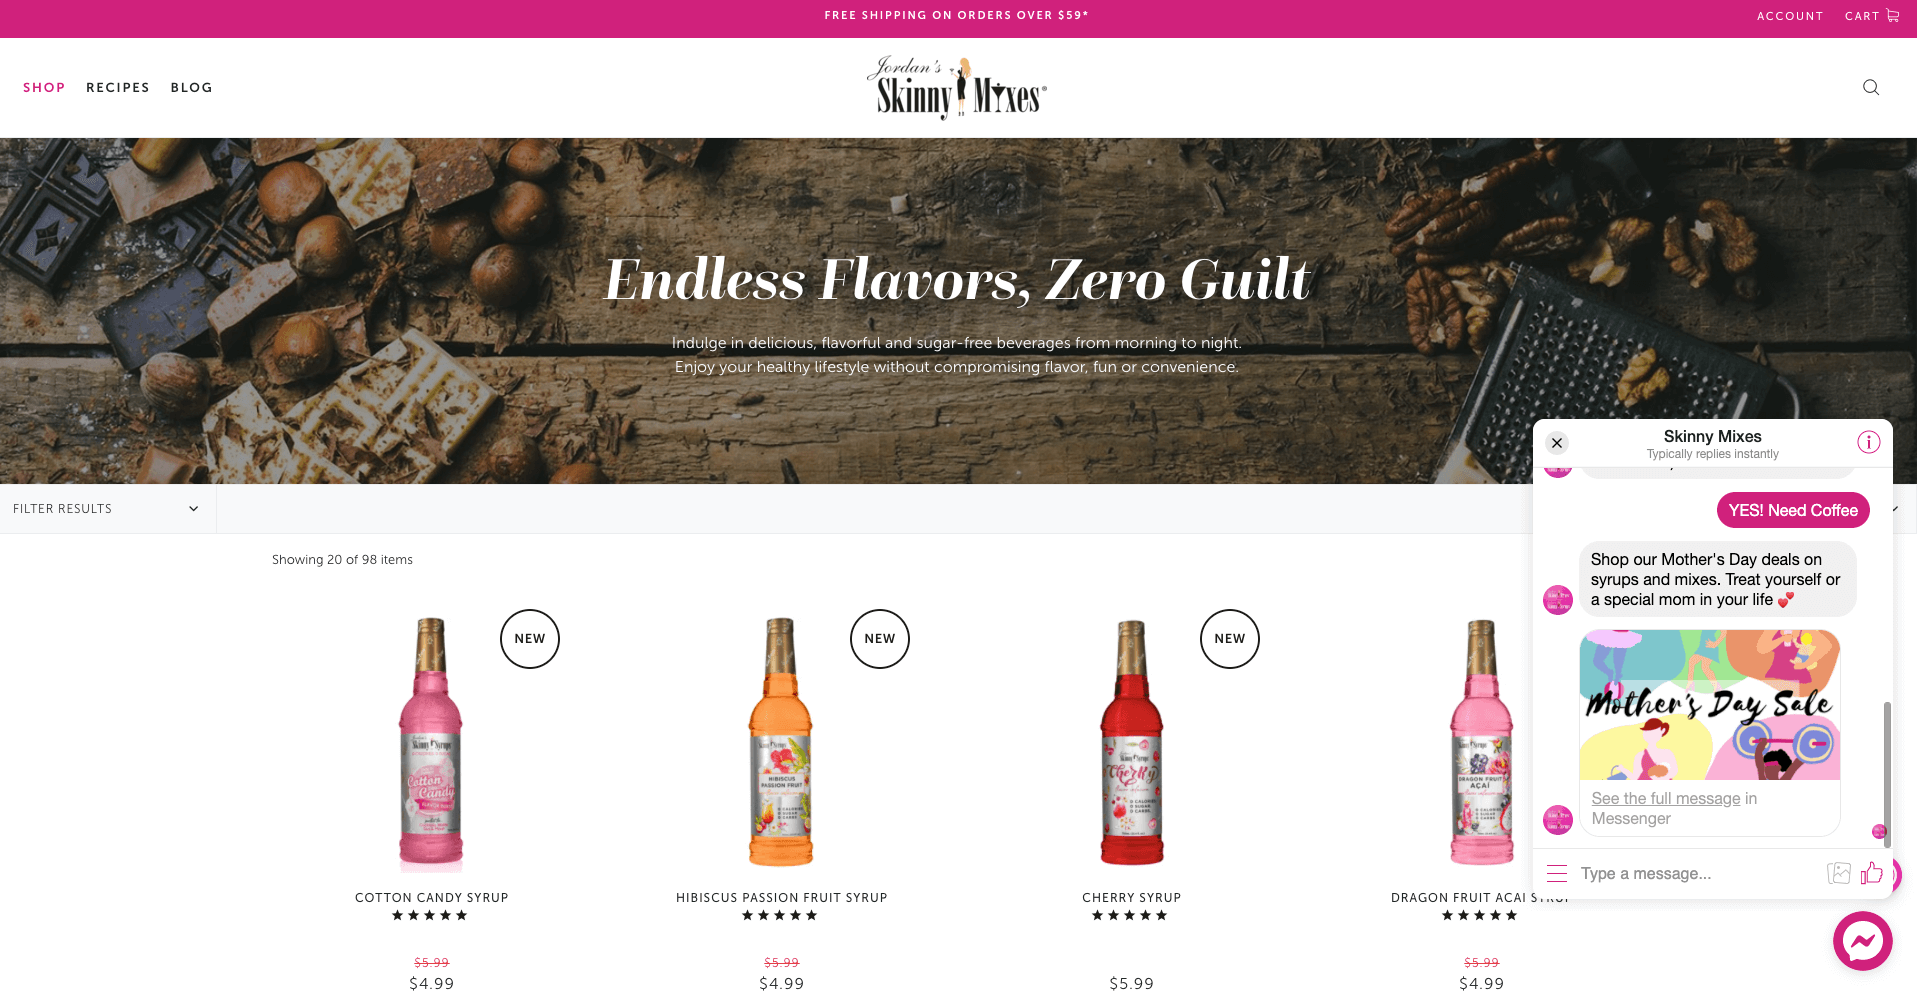 Skinny Mixes product Page